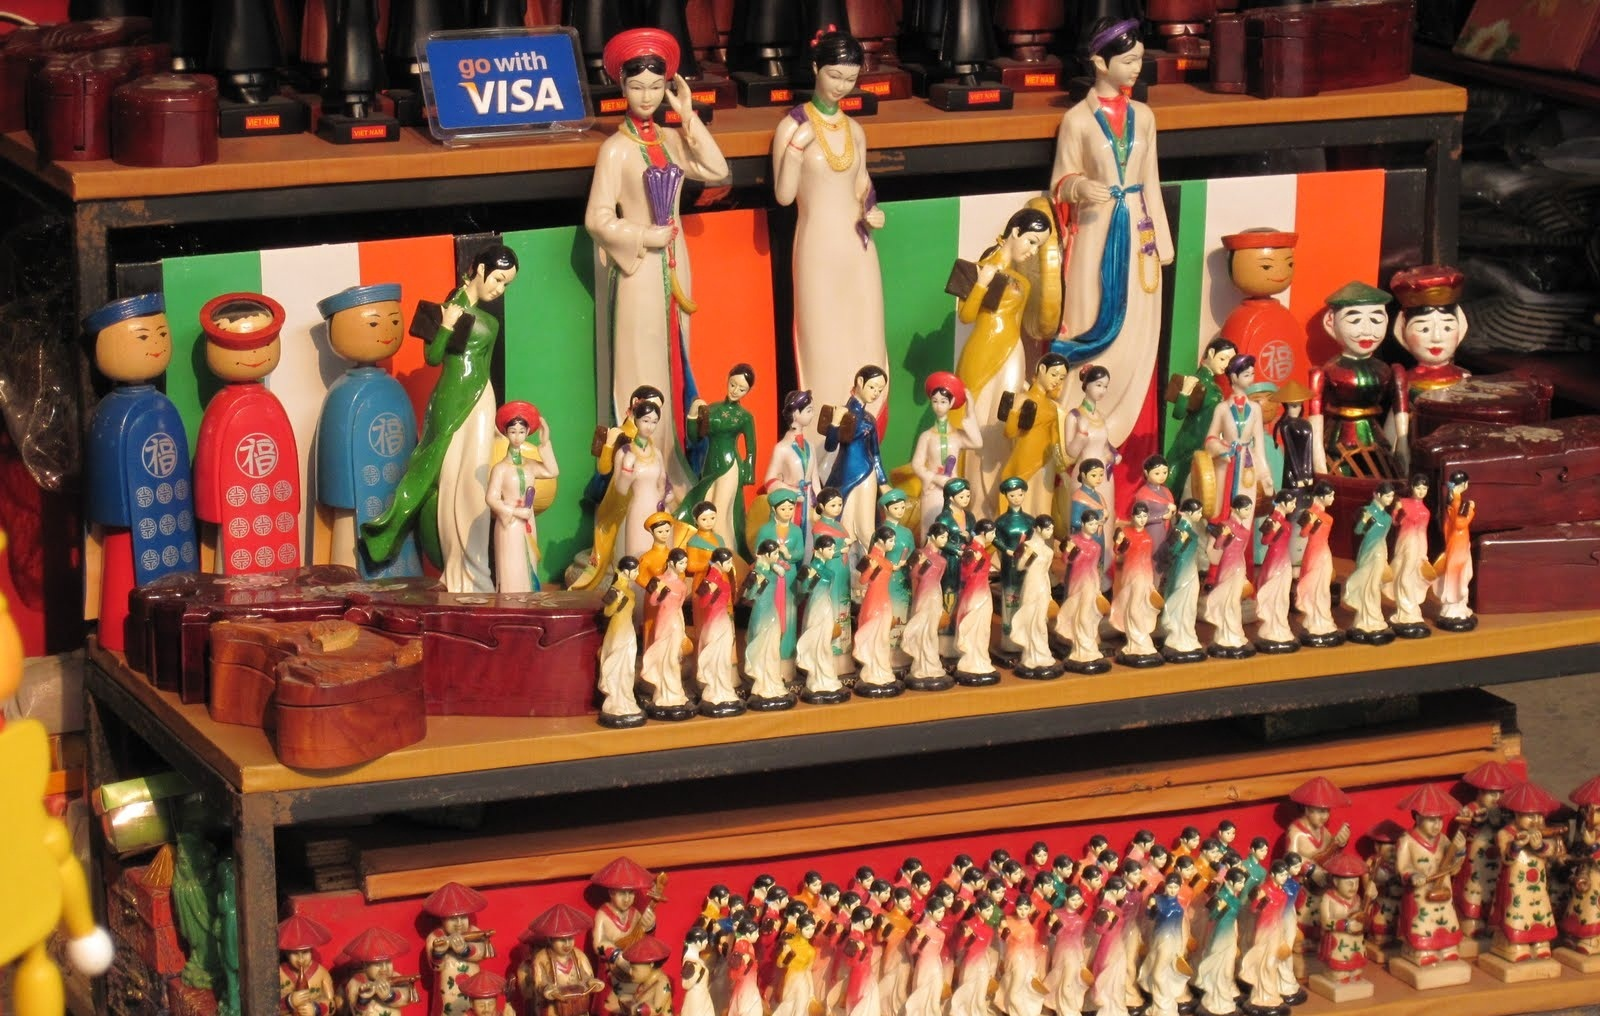 Why not to bring home some of these cute wooden dolls in traditional Vietnamese costumes?